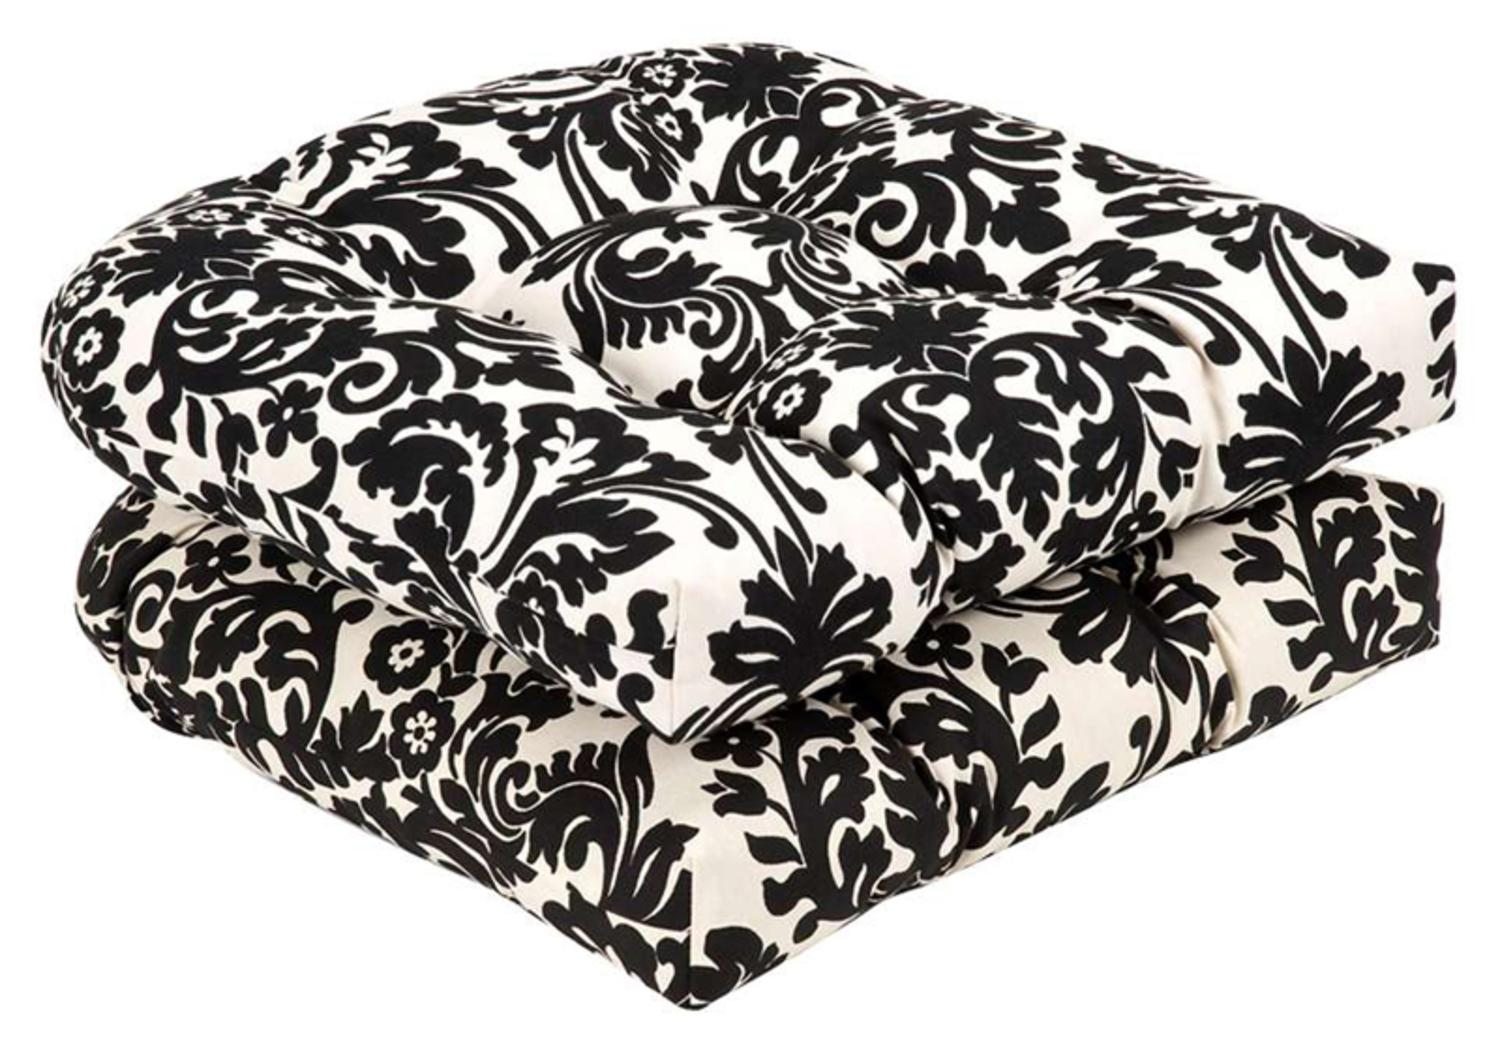 Pack of 2 Outdoor Patio Furniture Wicker Chair Seat Cushions Dramatic Damask by CC Home Furnishings